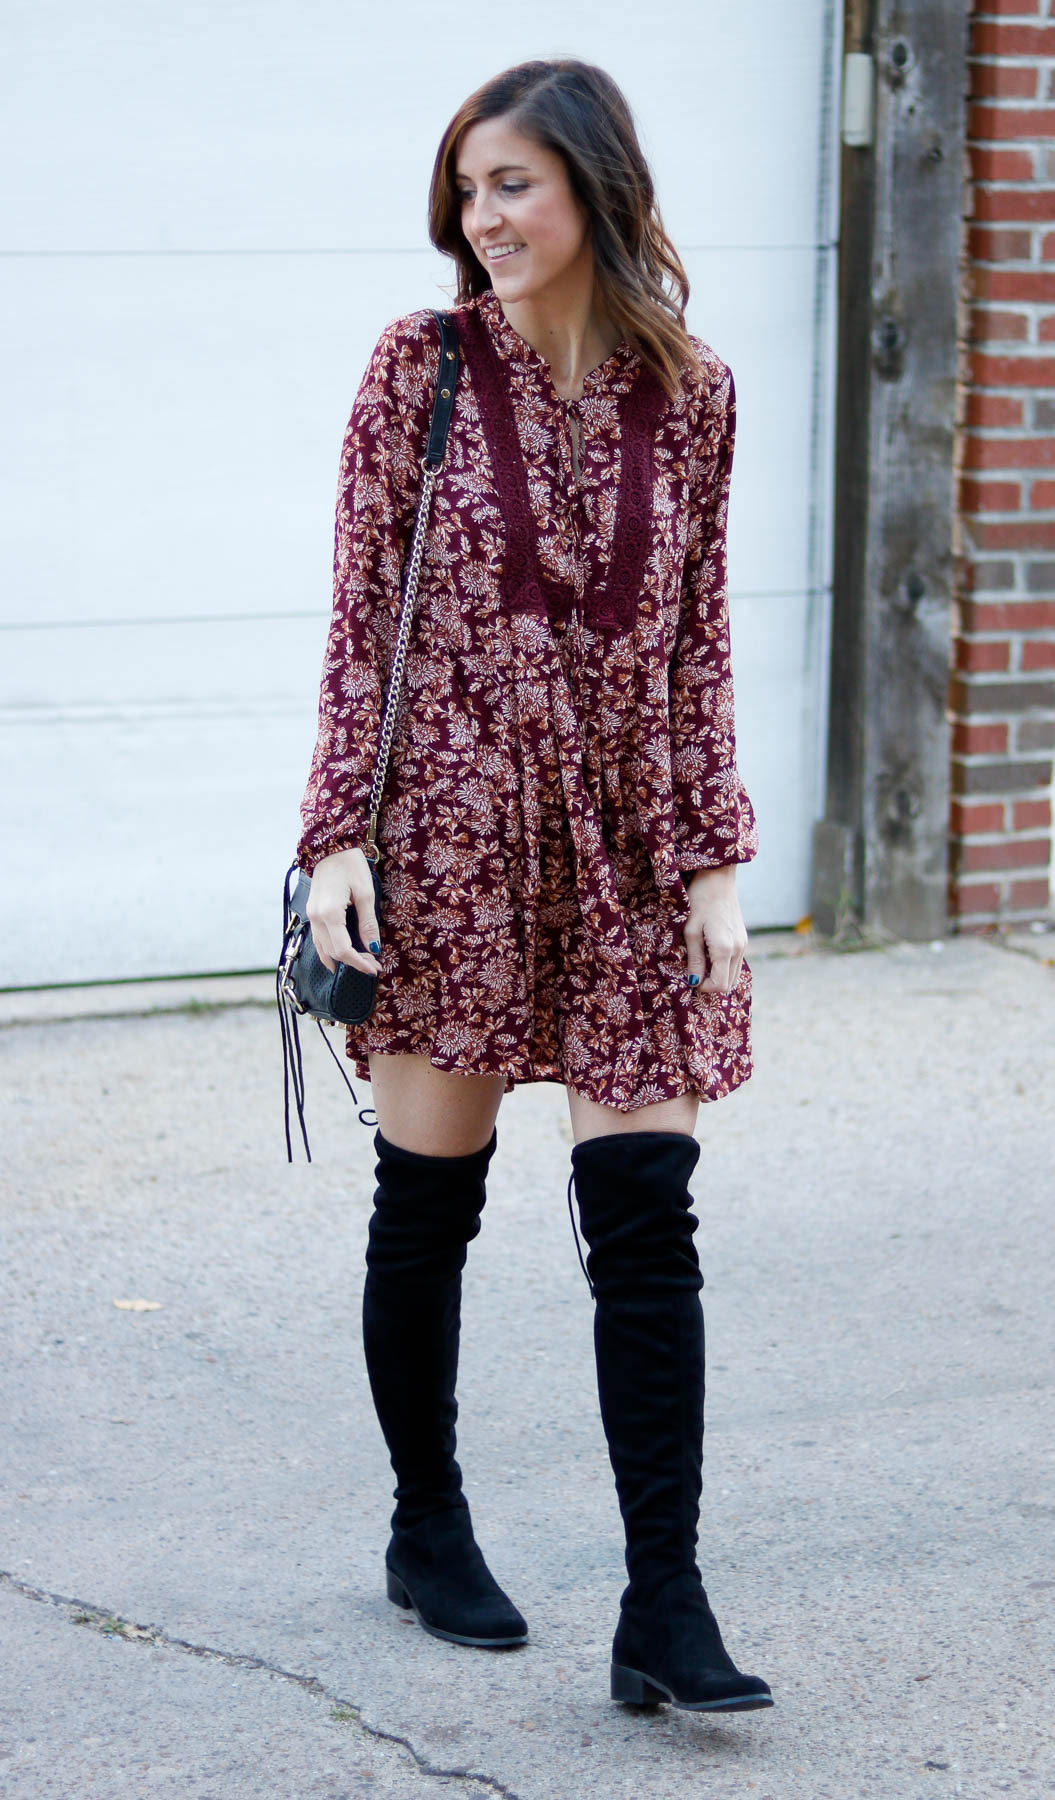 Gray Monroe maroon long sleeve dress paired with over the knee boots.